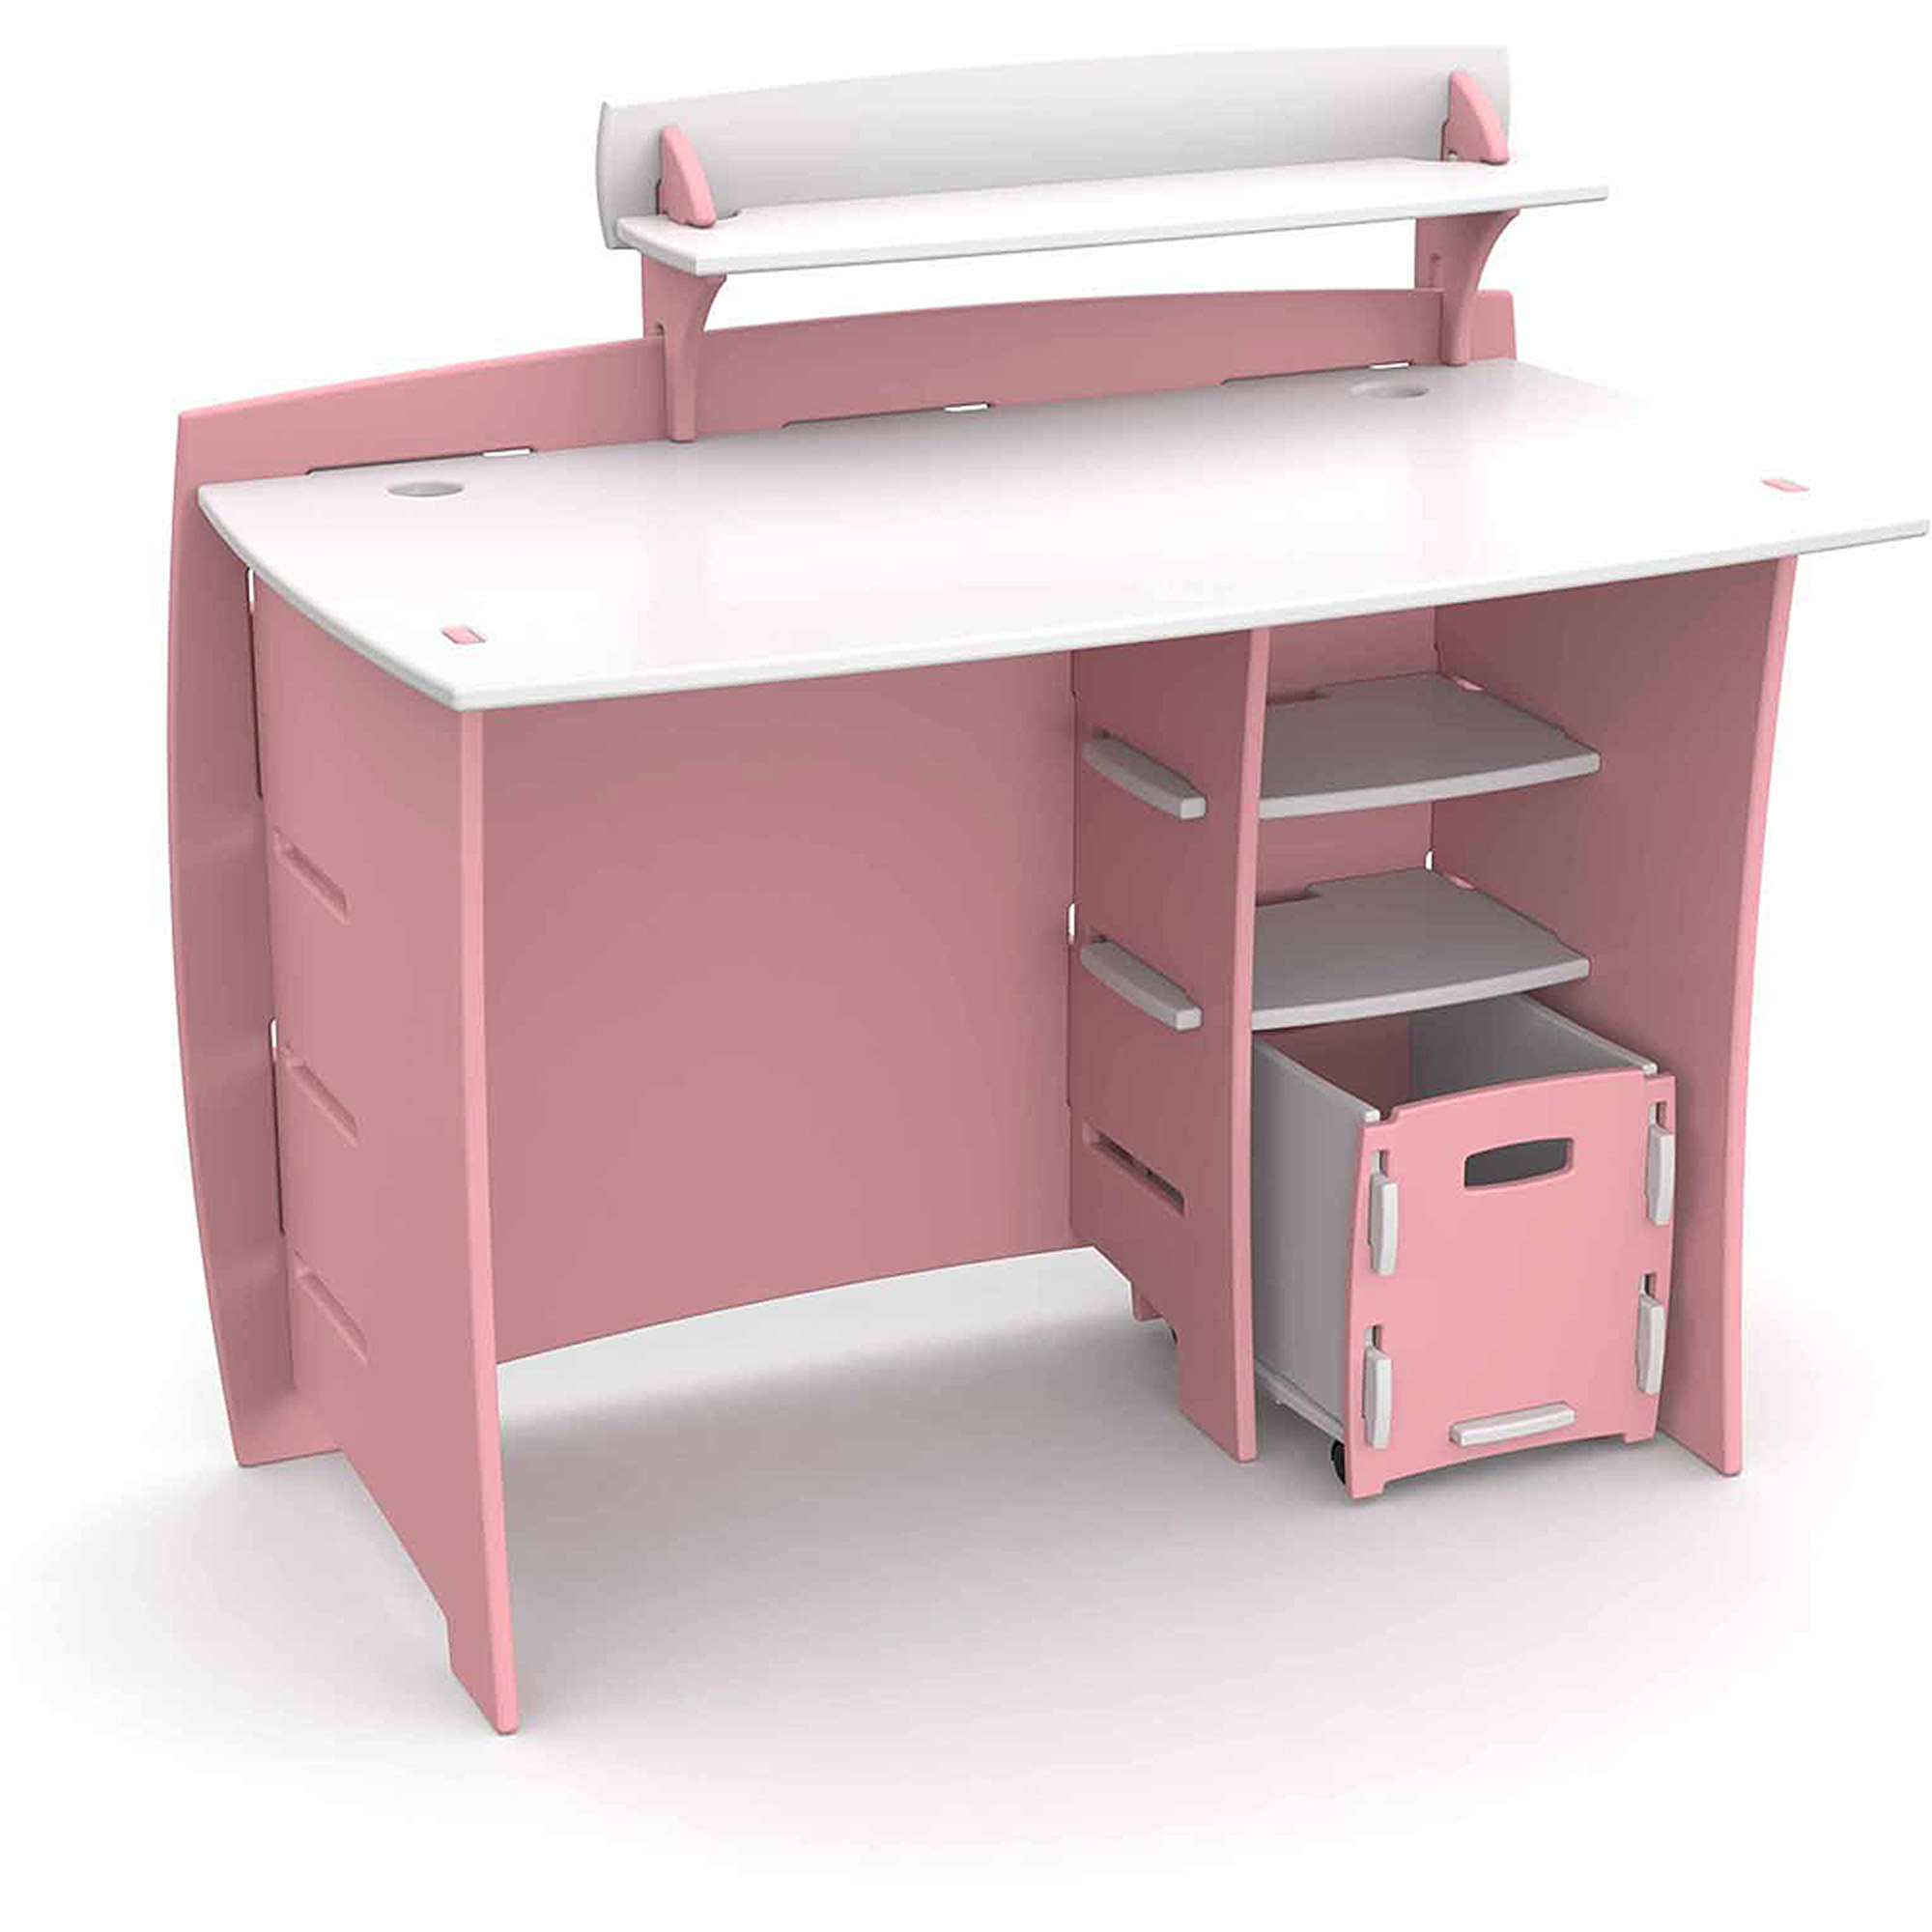 Legare Kids Furniture Princess Series Collection Complete Desk System Set, Pink and White